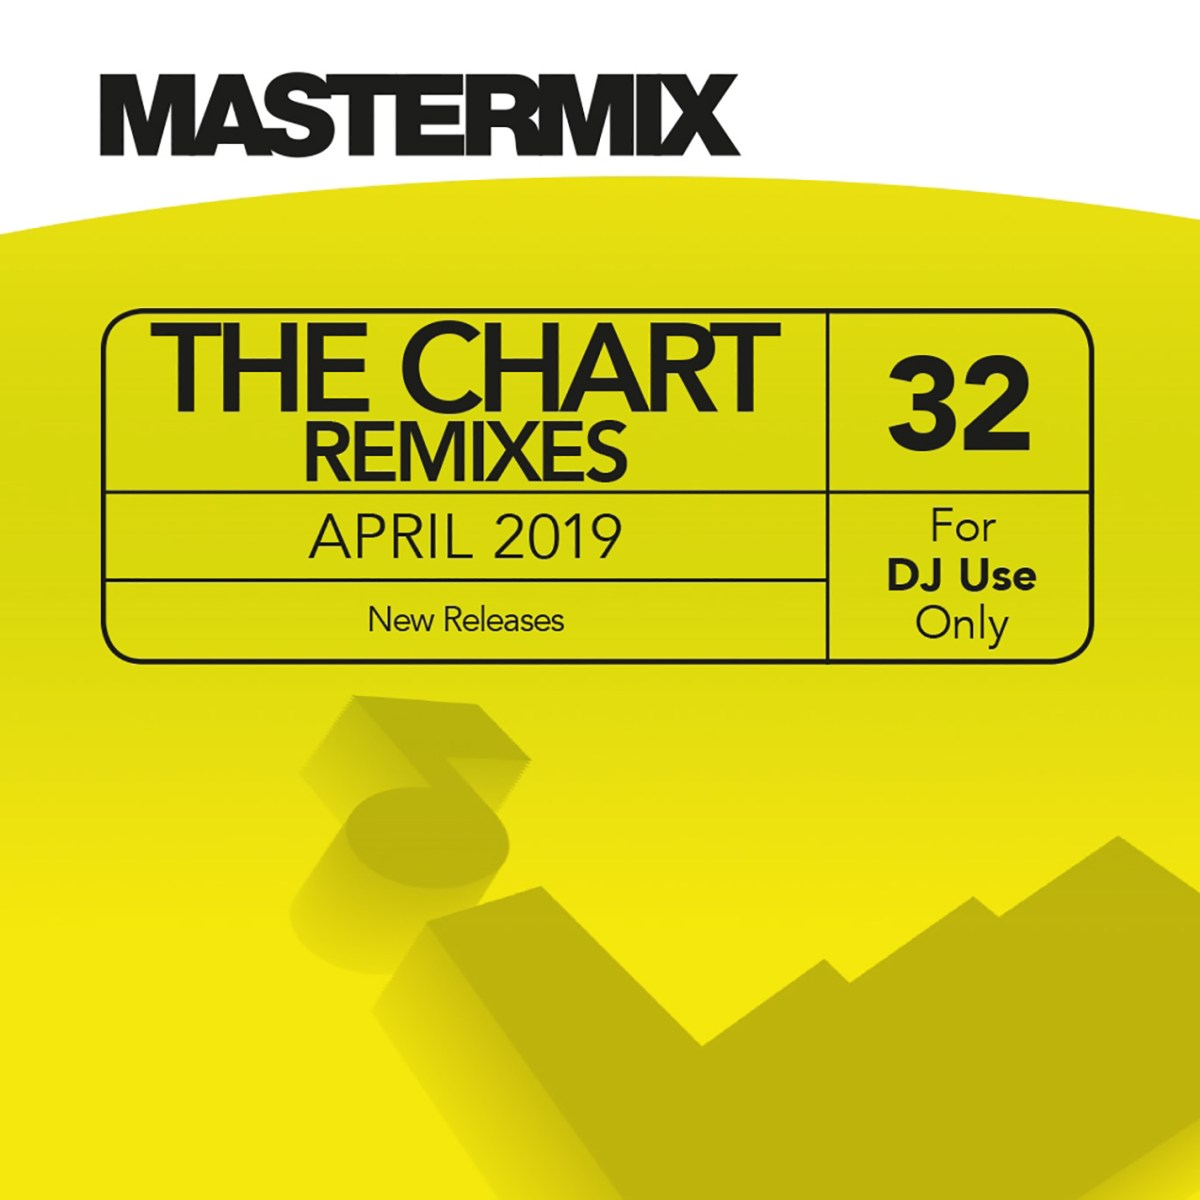 Mastermix The Chart Remixes Vol. 32